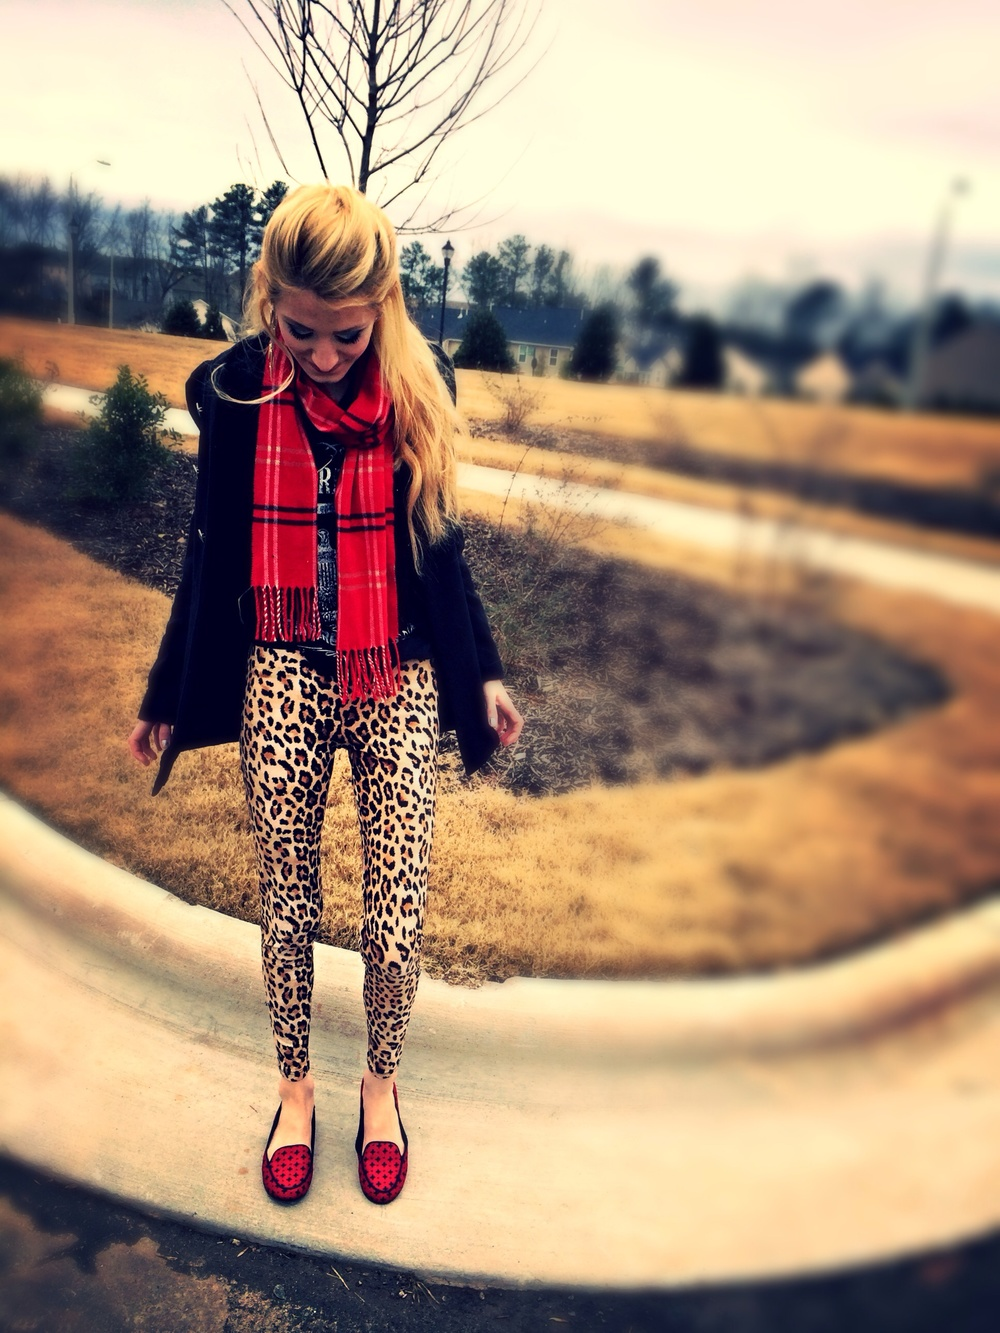 Leopard print and red plaid pattern mixing. By fashion and lifestyle blogger Jessica Linn.